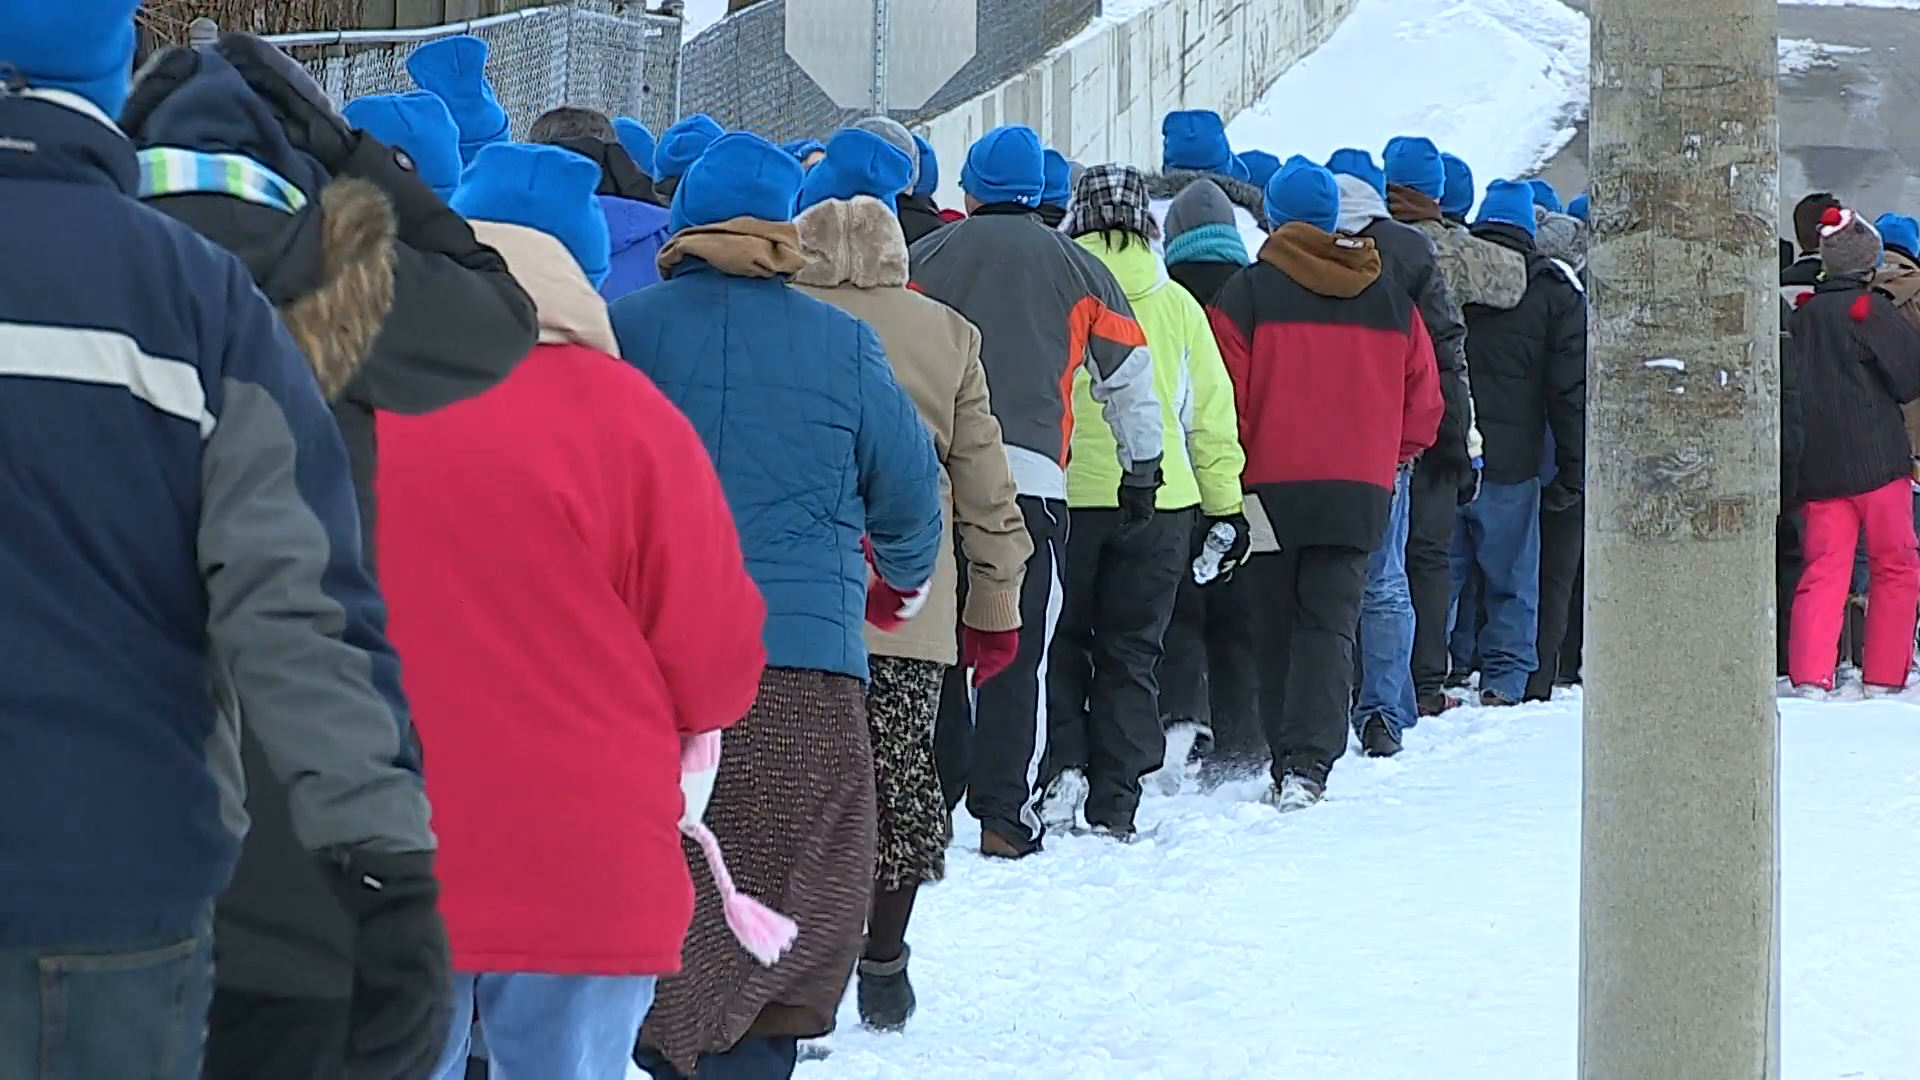 People walking in winter coats on freezing cold winter day Stock Video  Footage - VideoBlocks - People In Cold Winter PNG